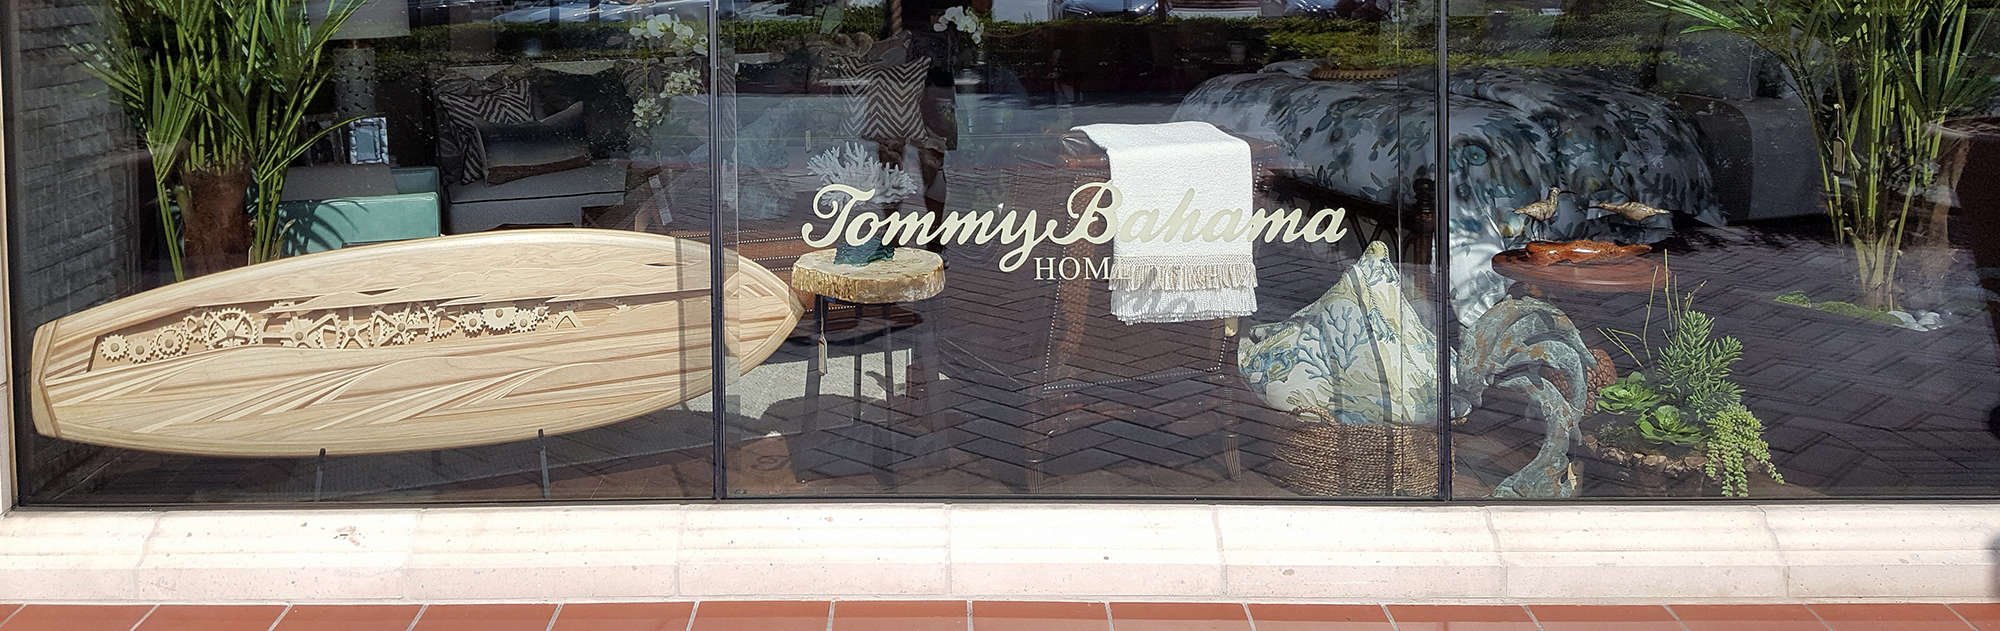 tommy bahama wood surfboards